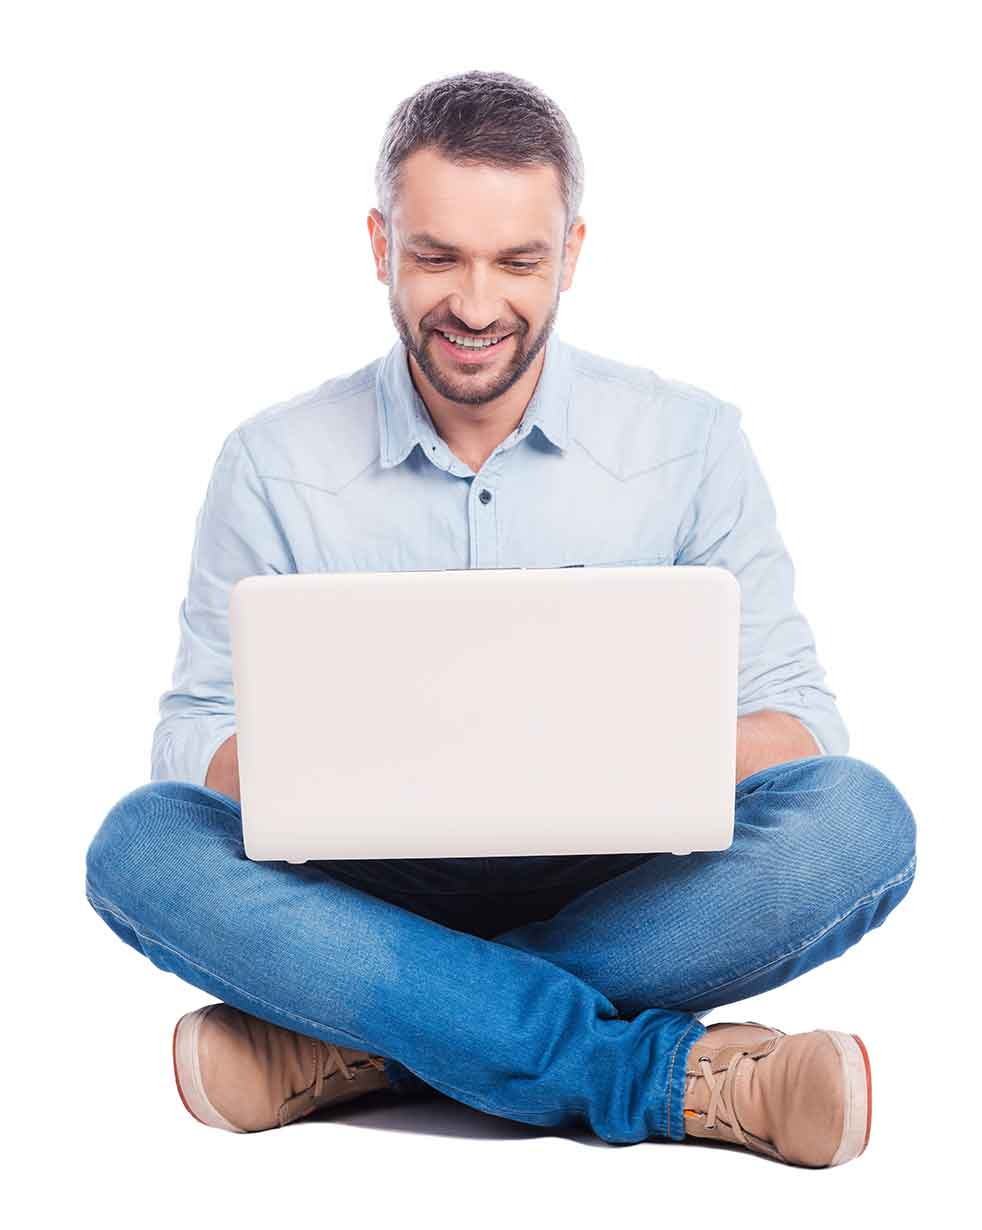 Man on computer answering questions